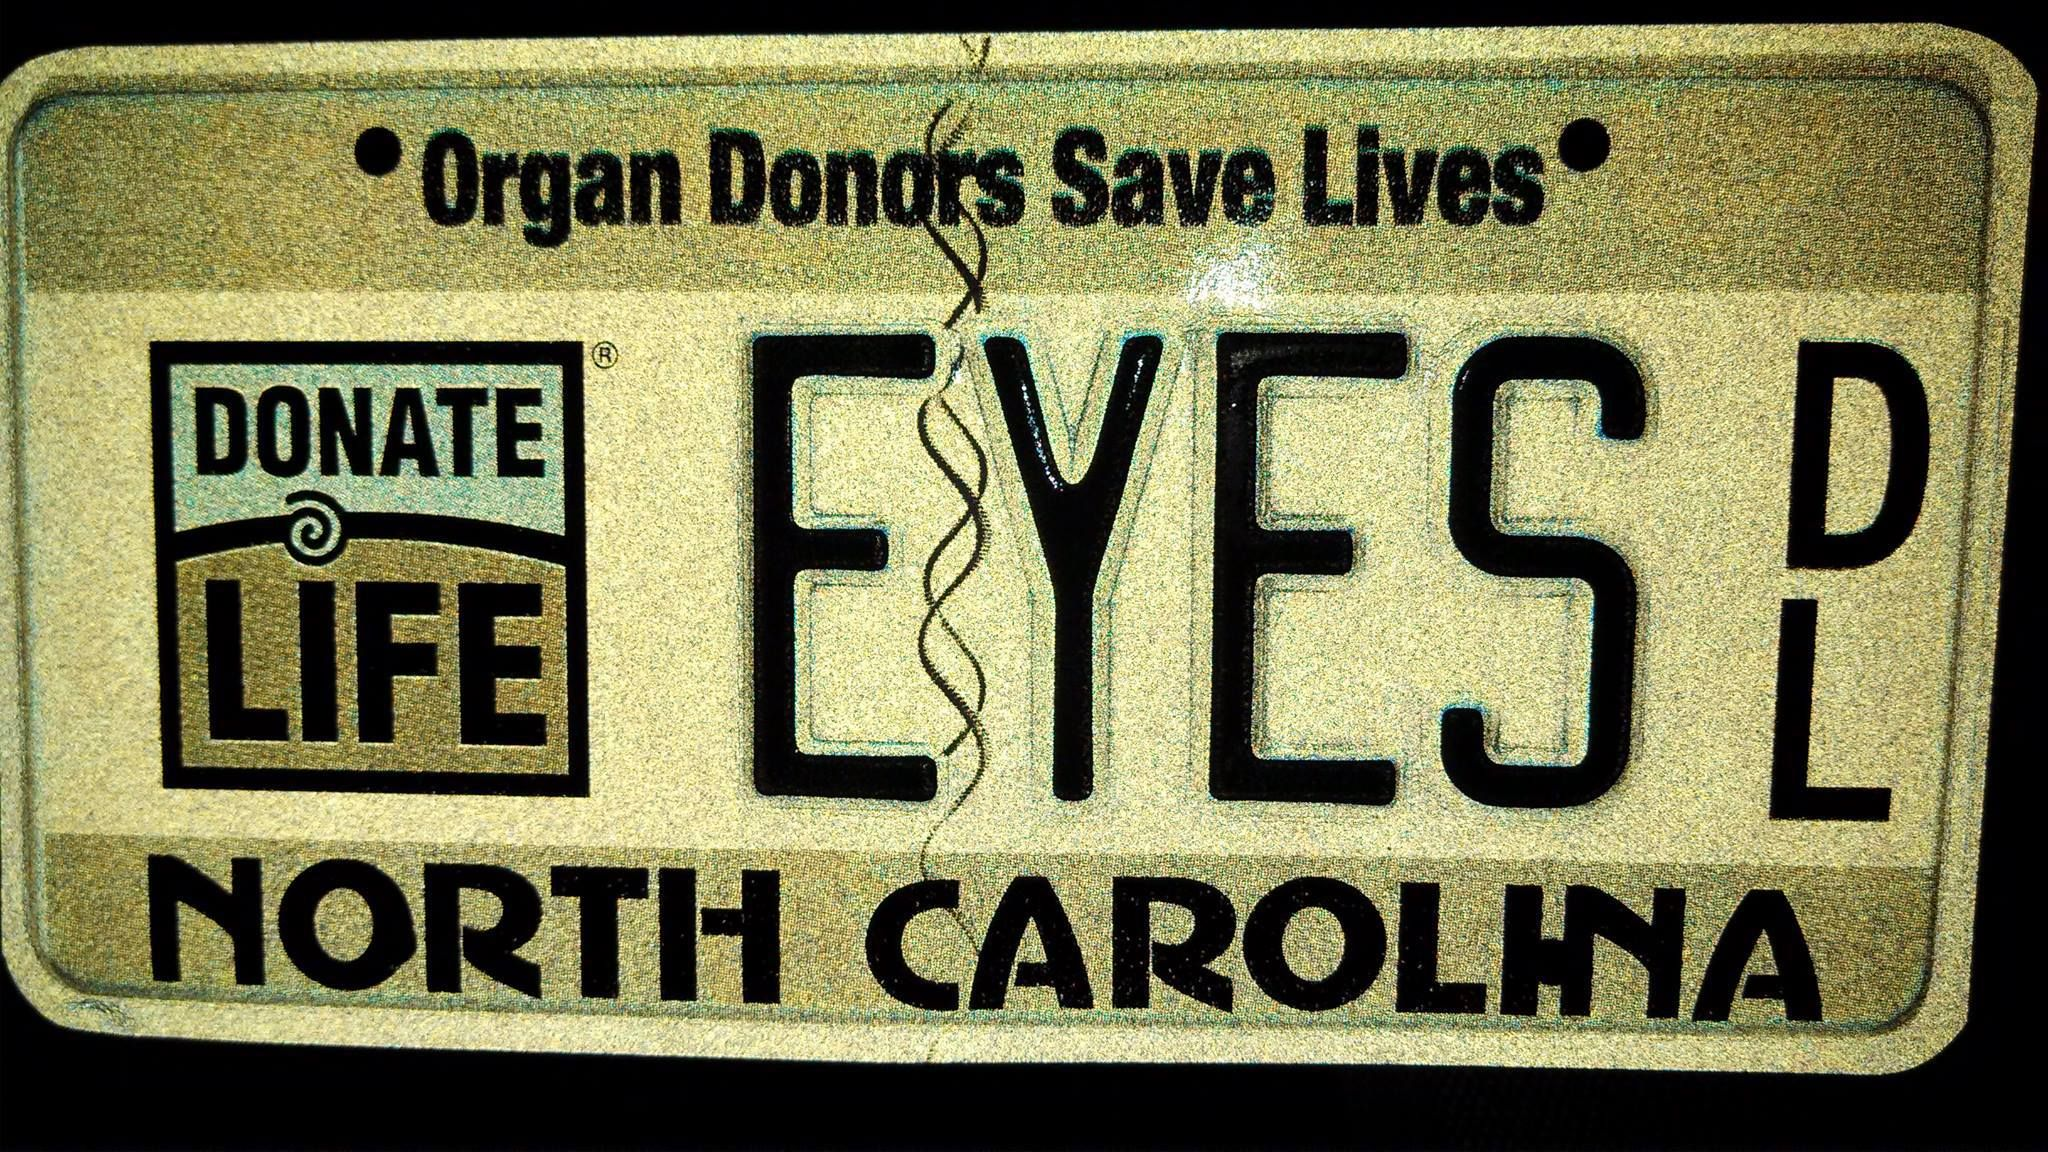 Check out this great personalized #DonateLife license plate